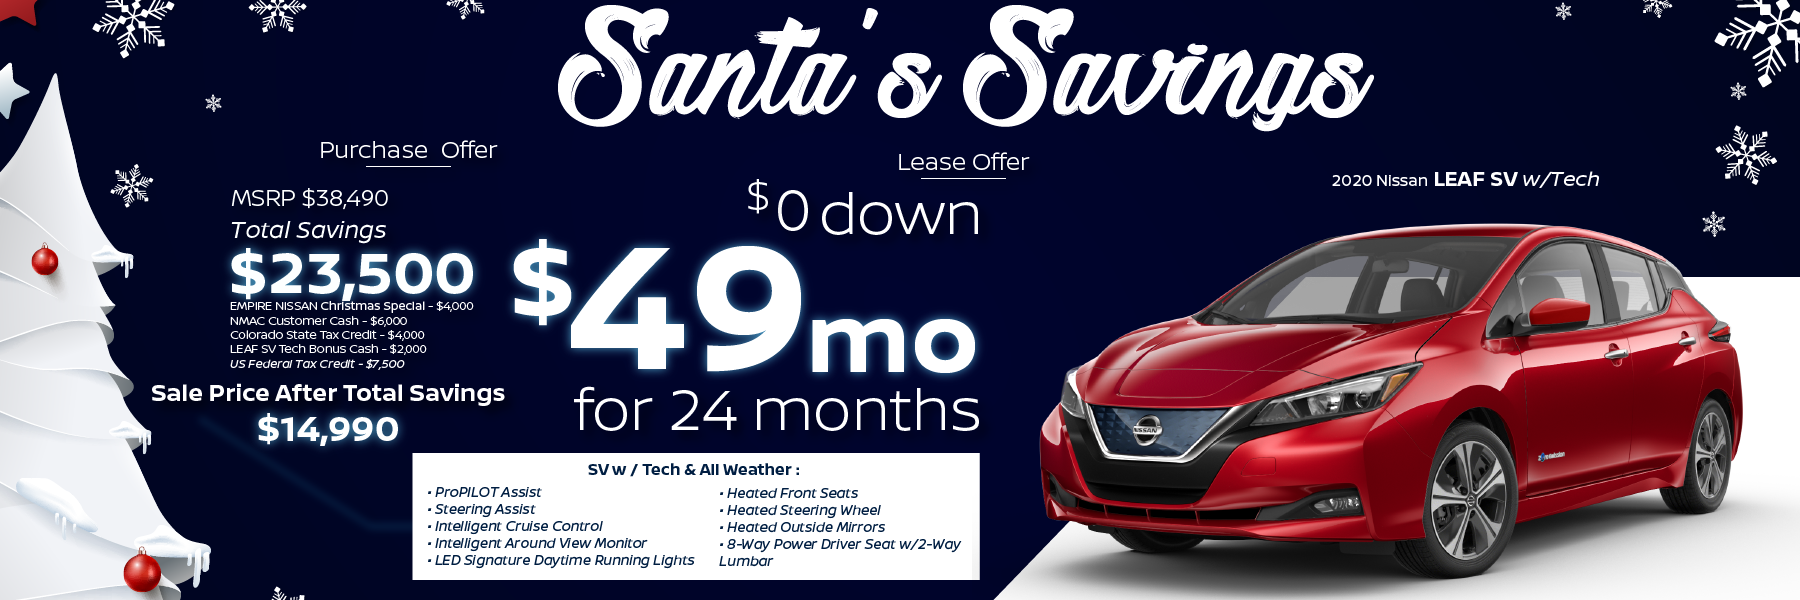 Best 2020 Nissan Leaf Lease and Purchase Specials in Denver, CO